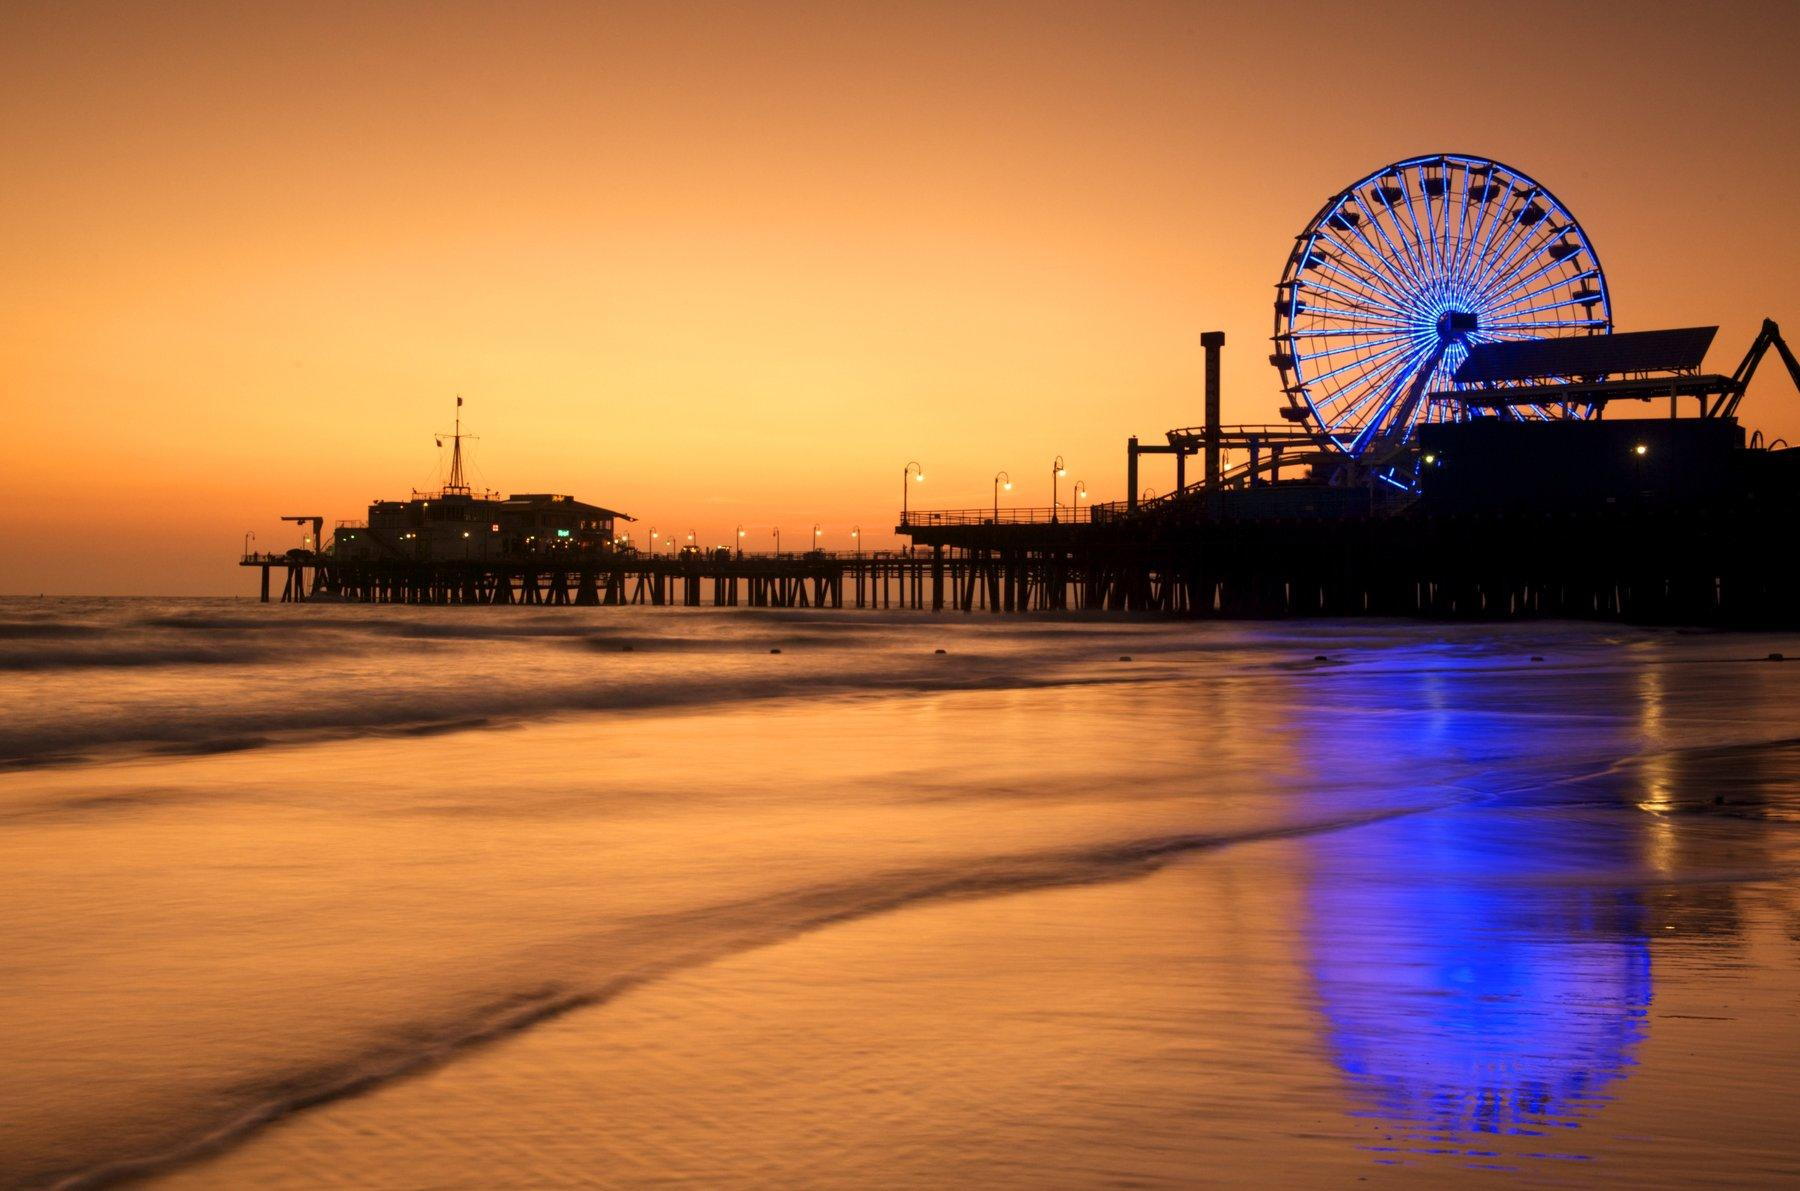 Santa Monica Pier lit up at sunset